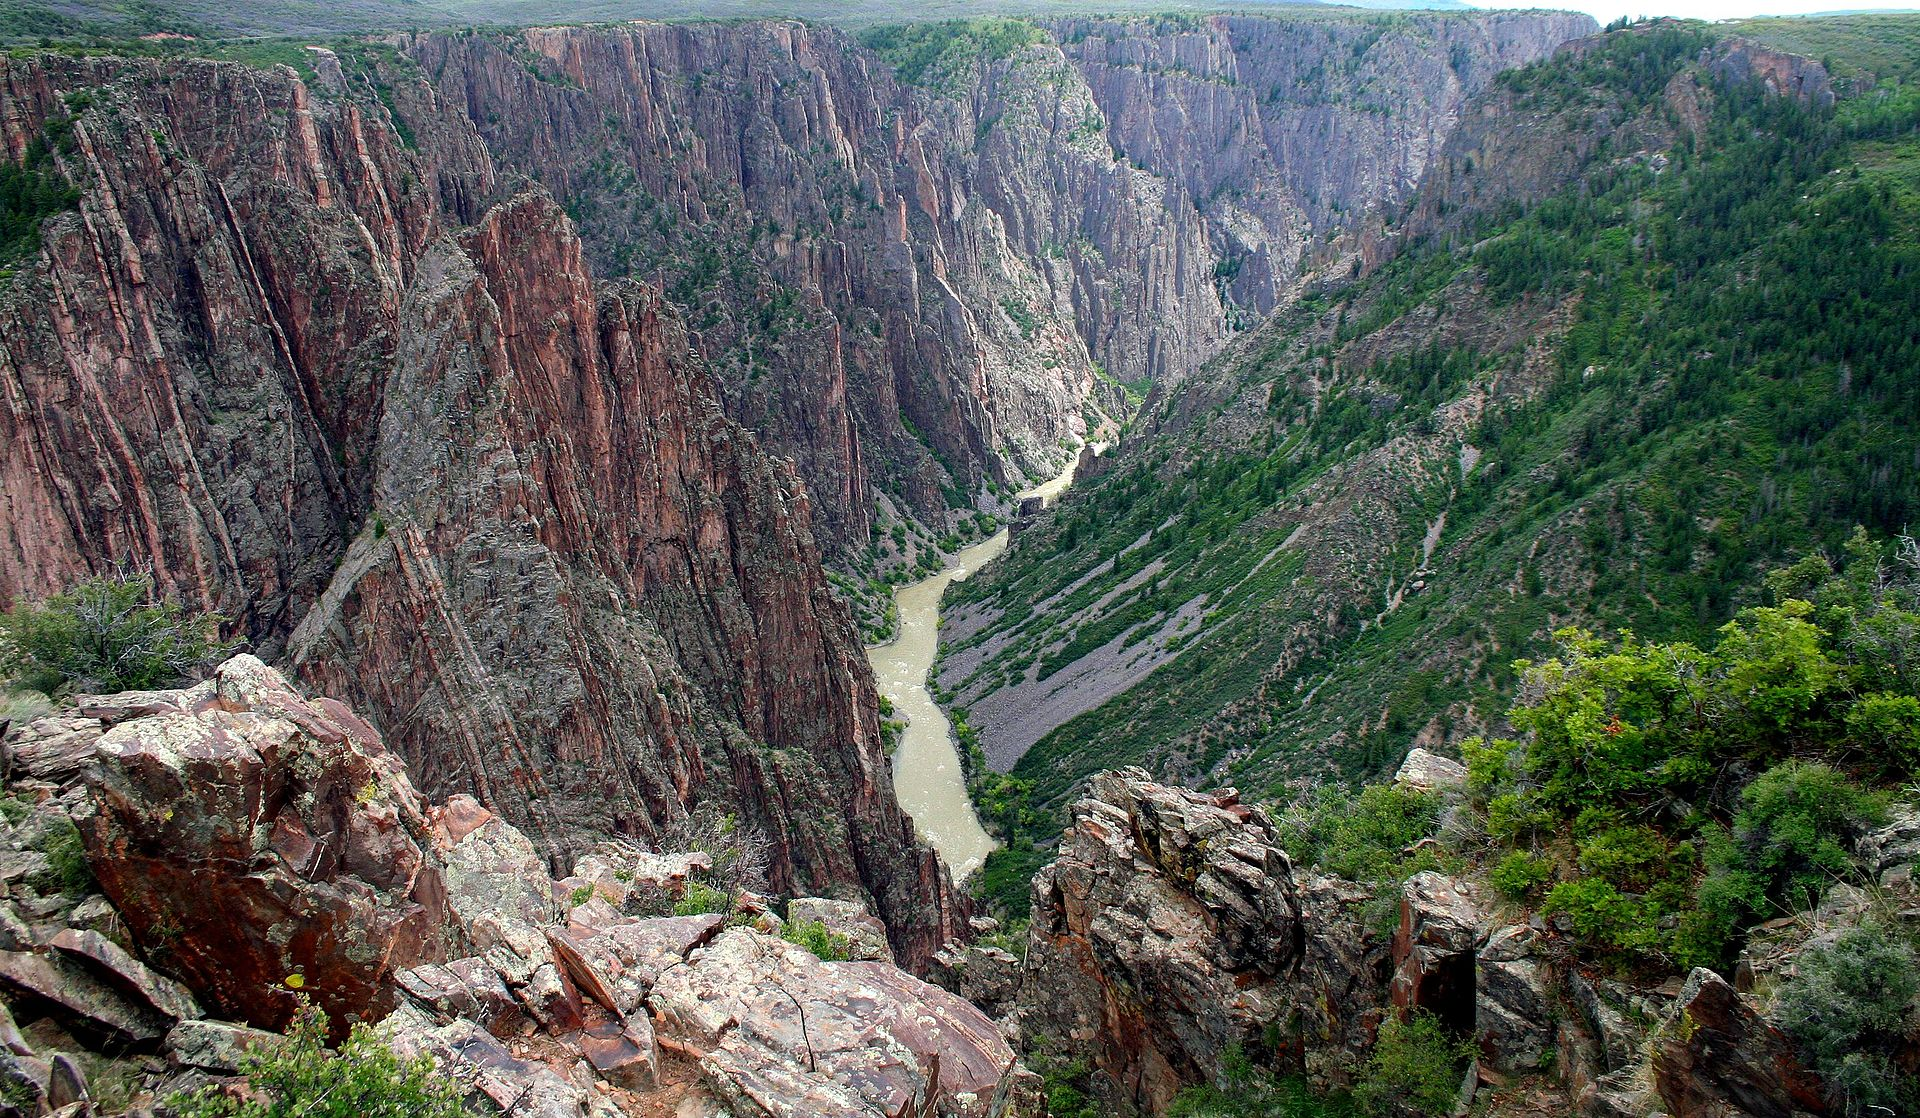 The Black Canyon of the Gunnison River National Park was established in 1999.